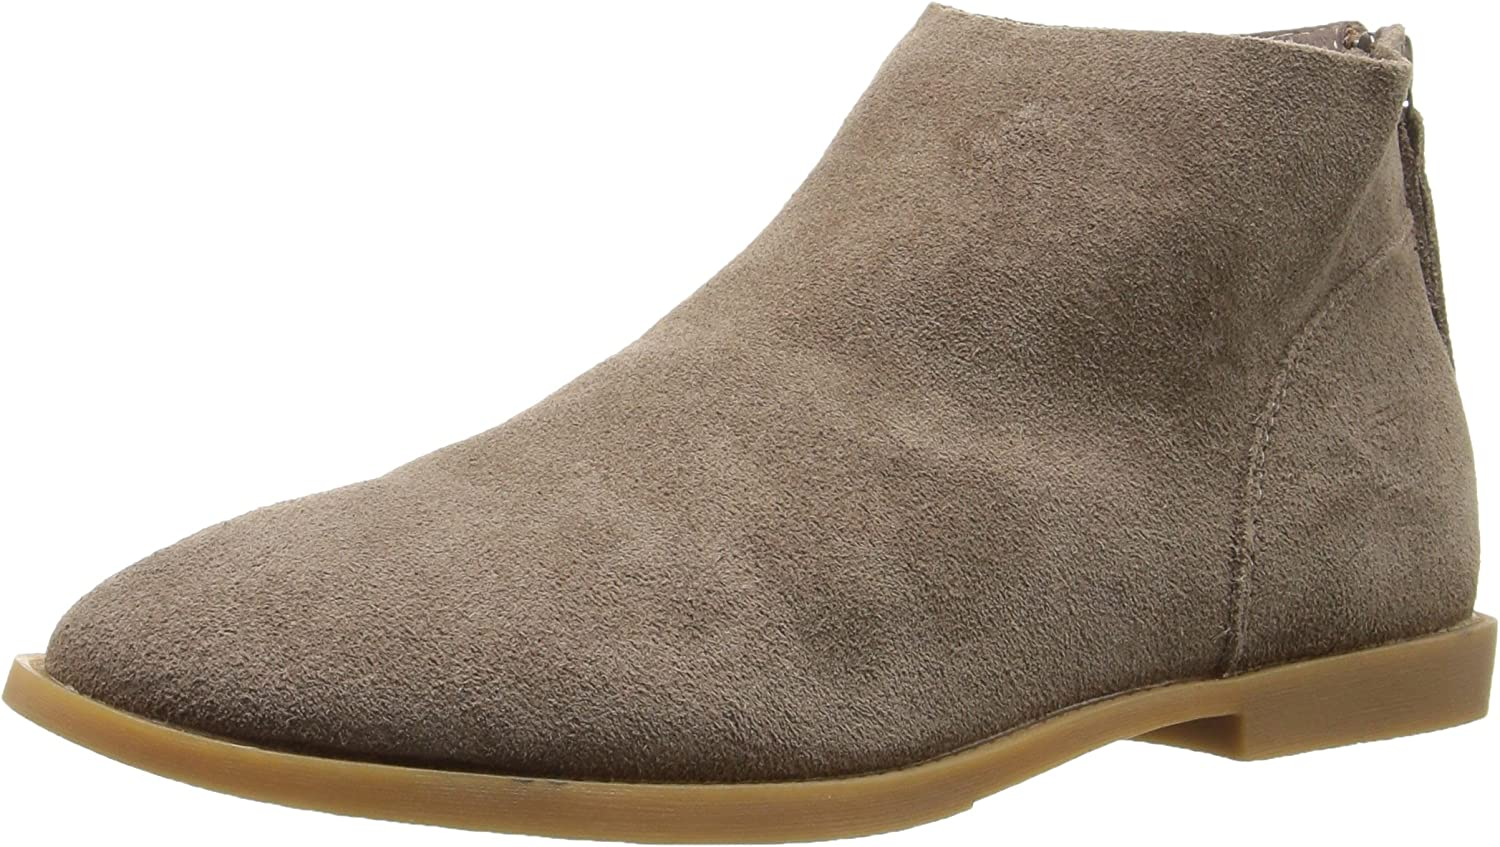 Dirty Laundry by Chinese Laundry Women's Karate Chop Bootie